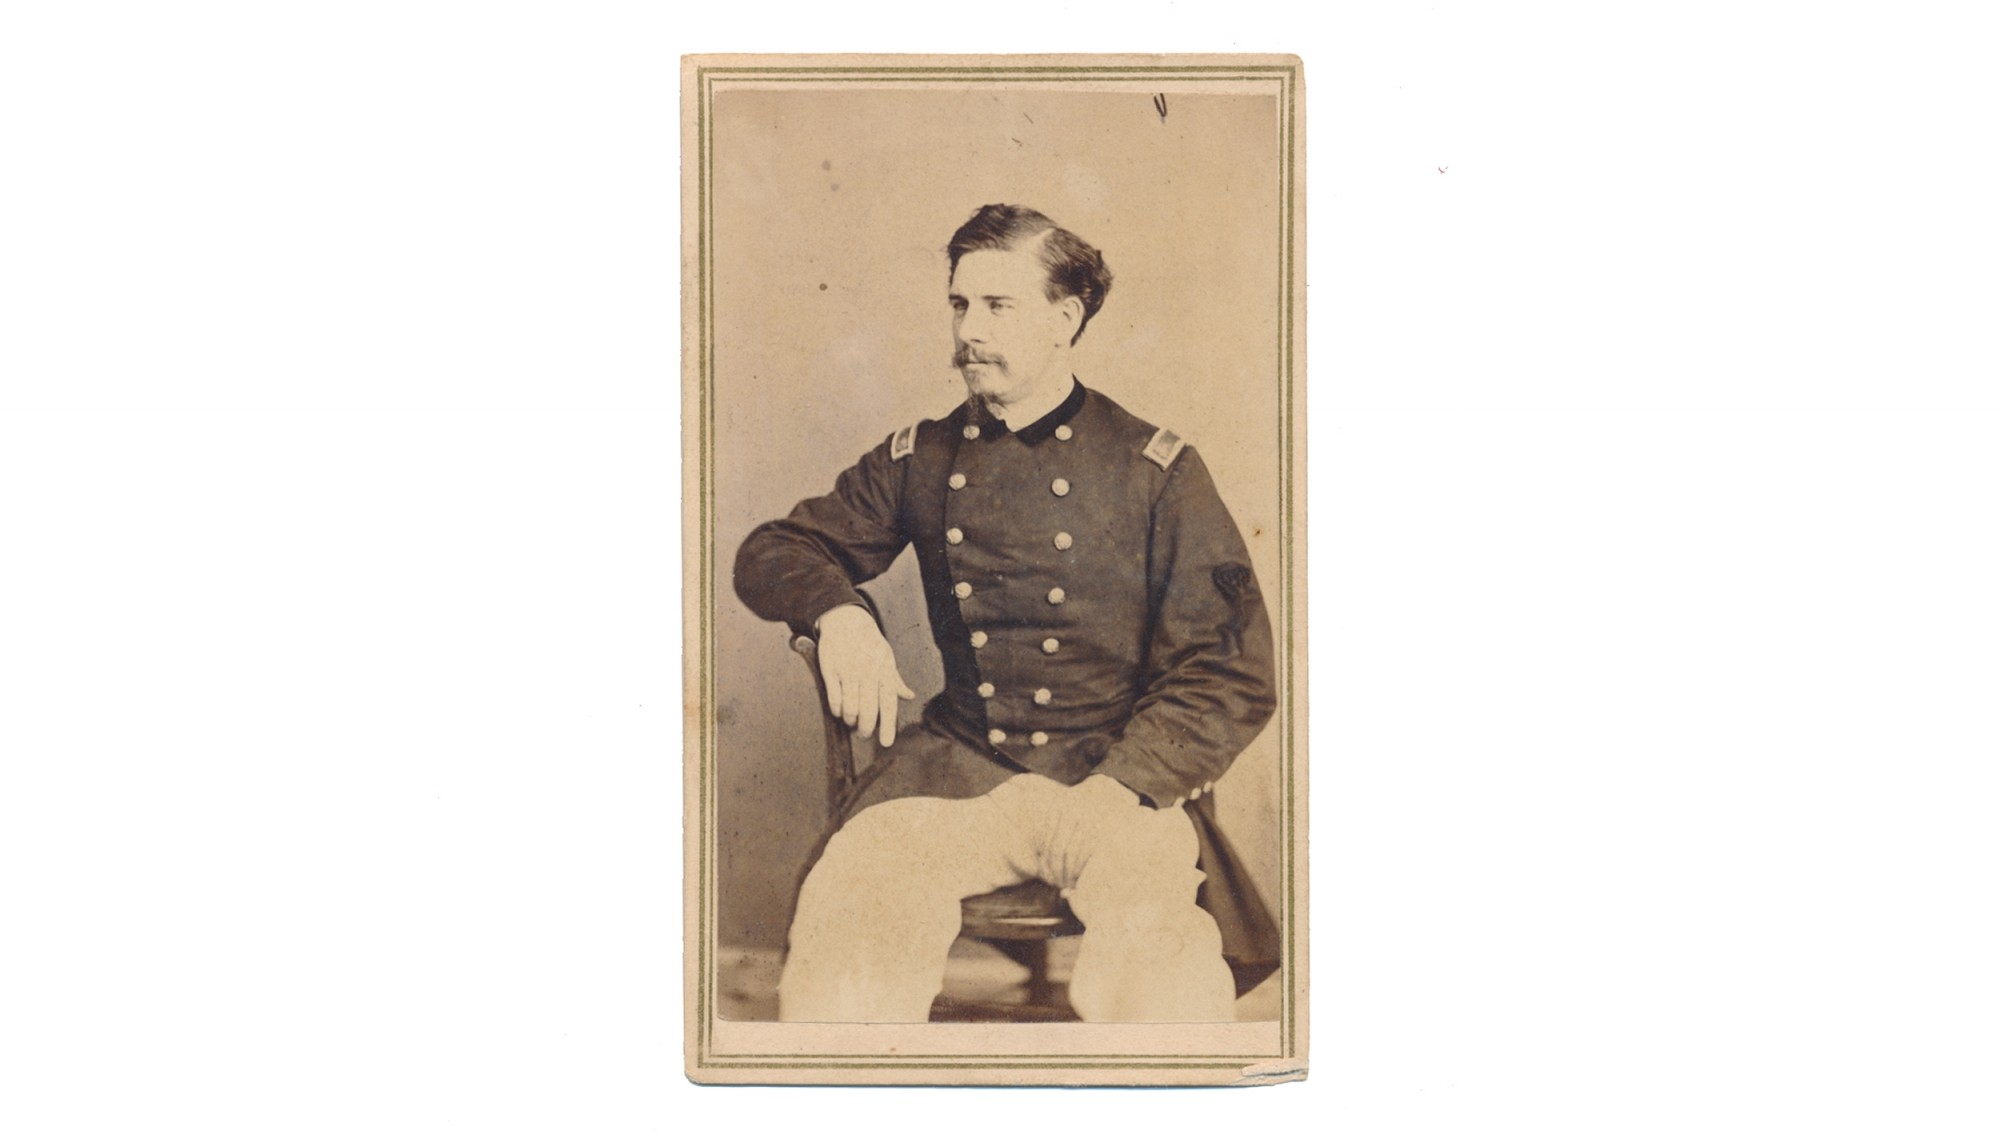 AUTOGRAPHED CDV OF JAMES ROWAN O'BEIRNE, 37TH NY INFANTRY, 22ND VETERAN RESERVES CORPS, MEDAL OF HONOR RECIPIENT